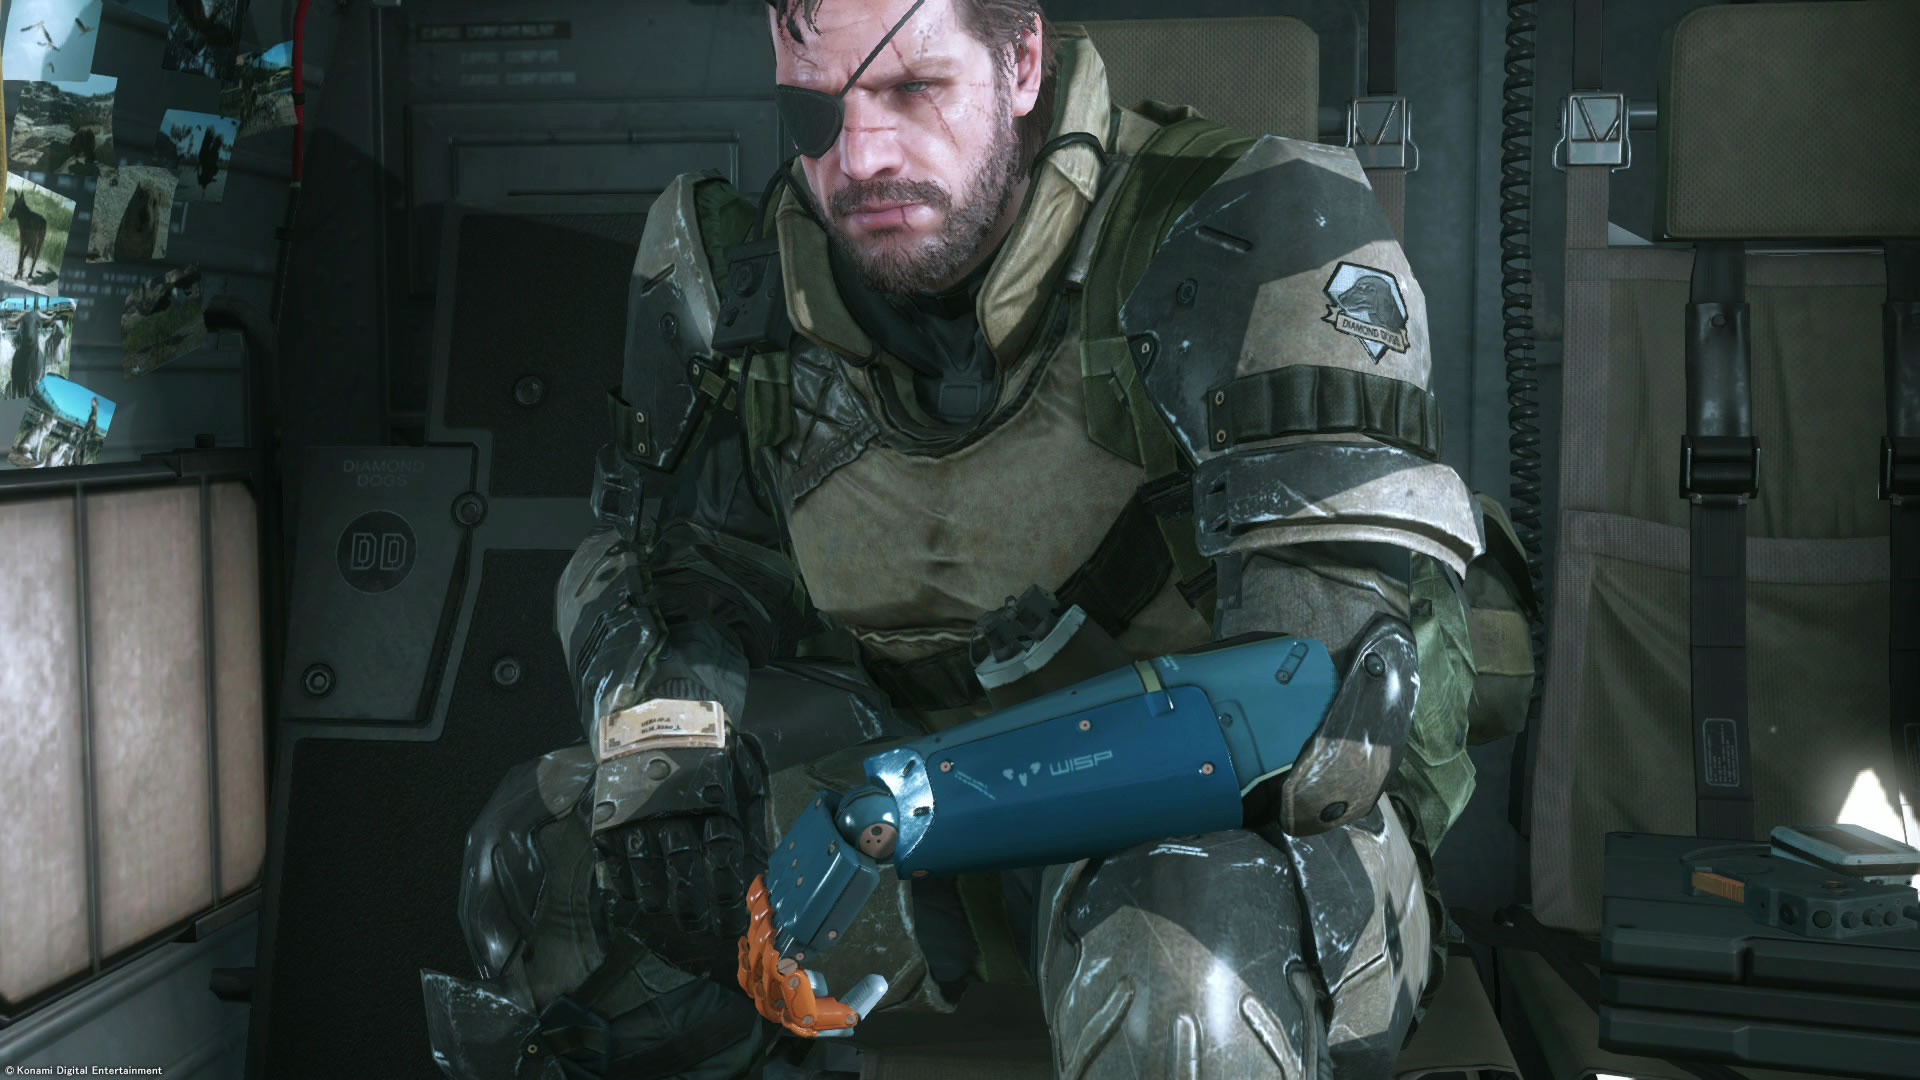 Metal-Gear-Solid-V-The-Phantom-Pain-Screenshot-Gamescom-2015-4